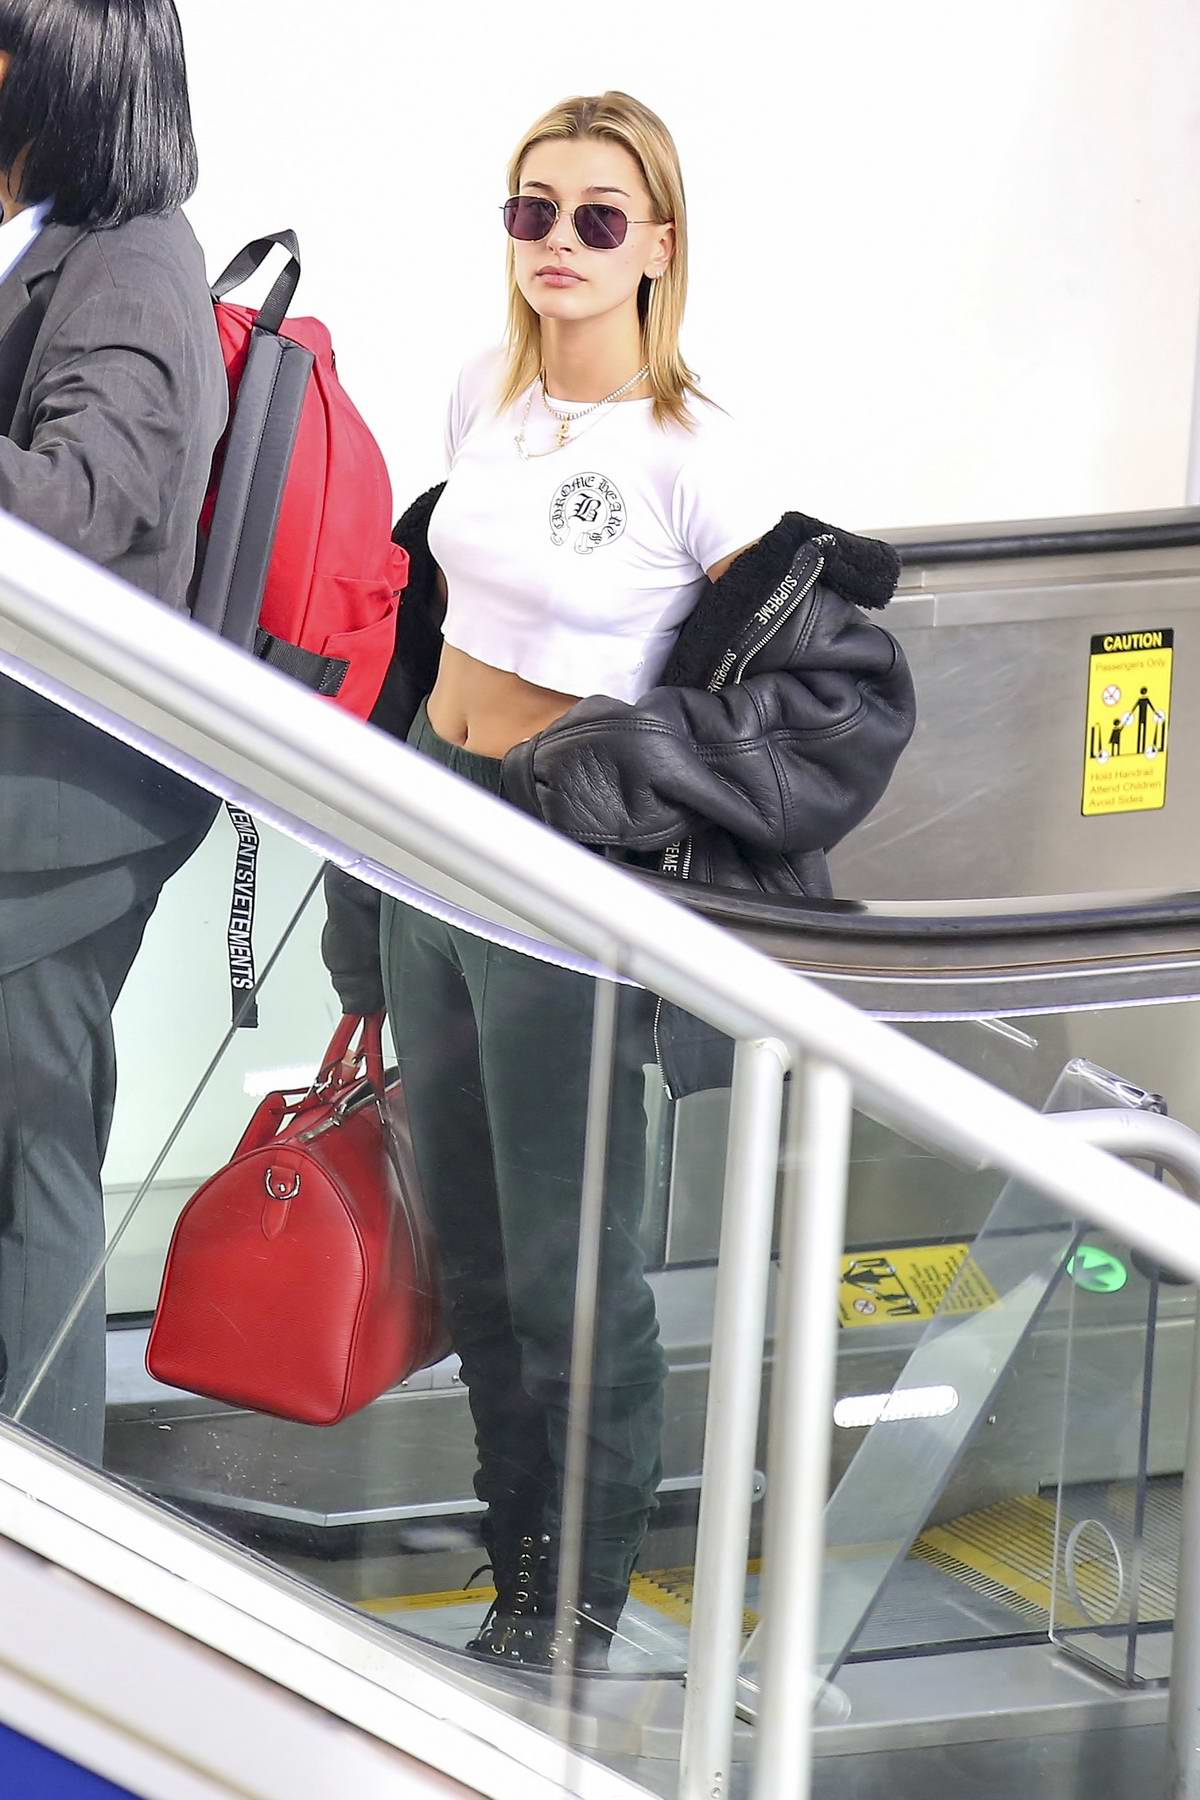 Hailey Baldwin in a crop top going through security at LAX airport in Los Angeles